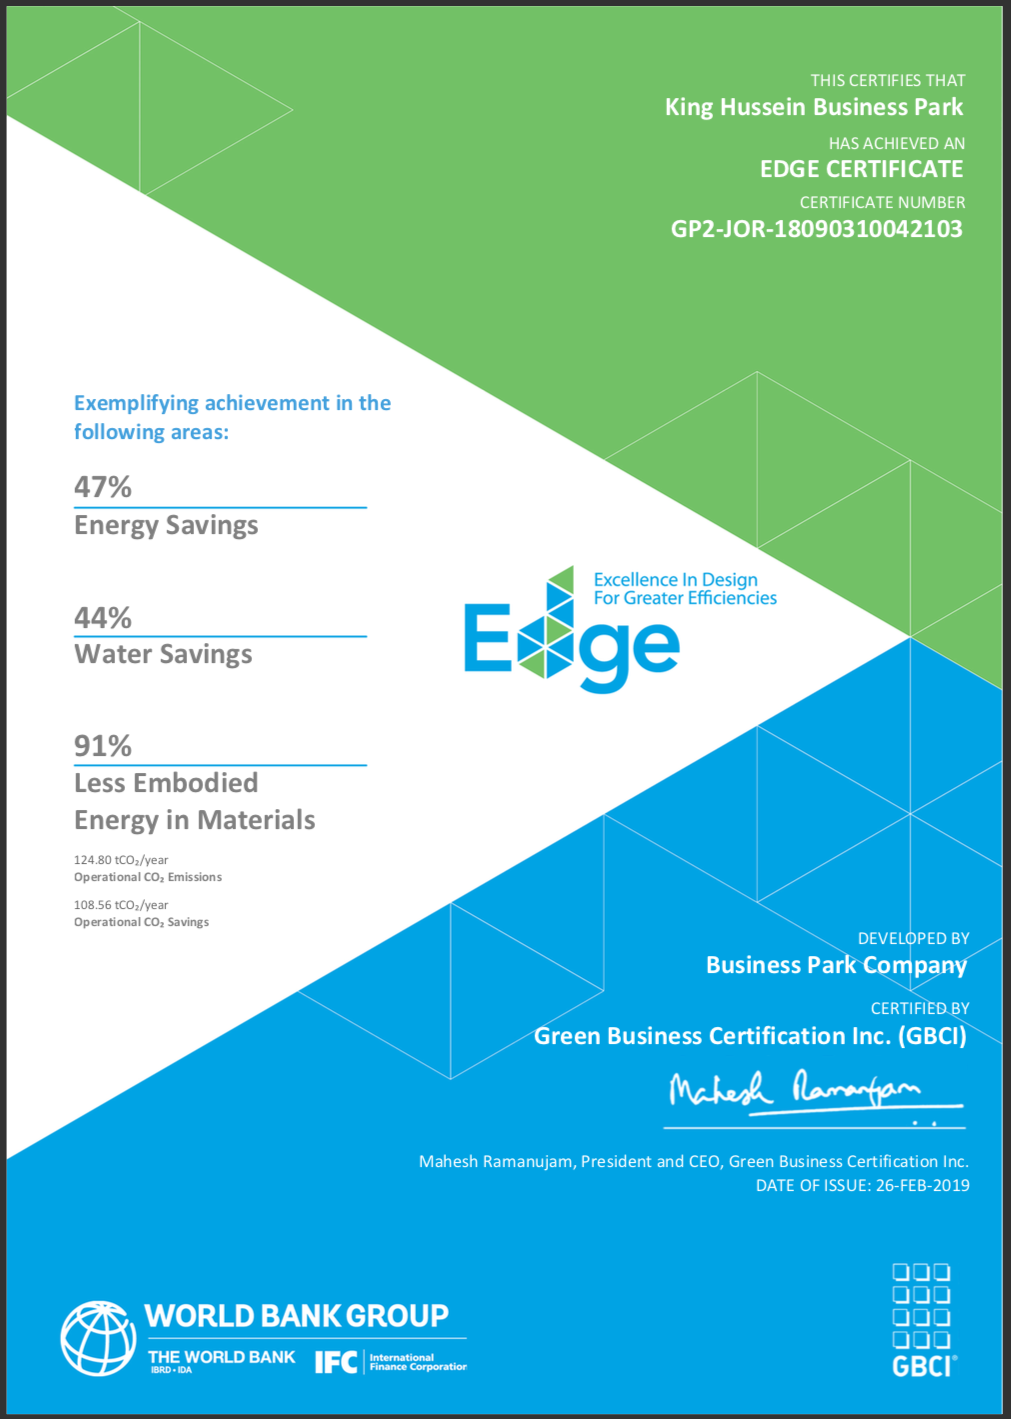 The First Jordanian Institution to Achieve EDGE Certification